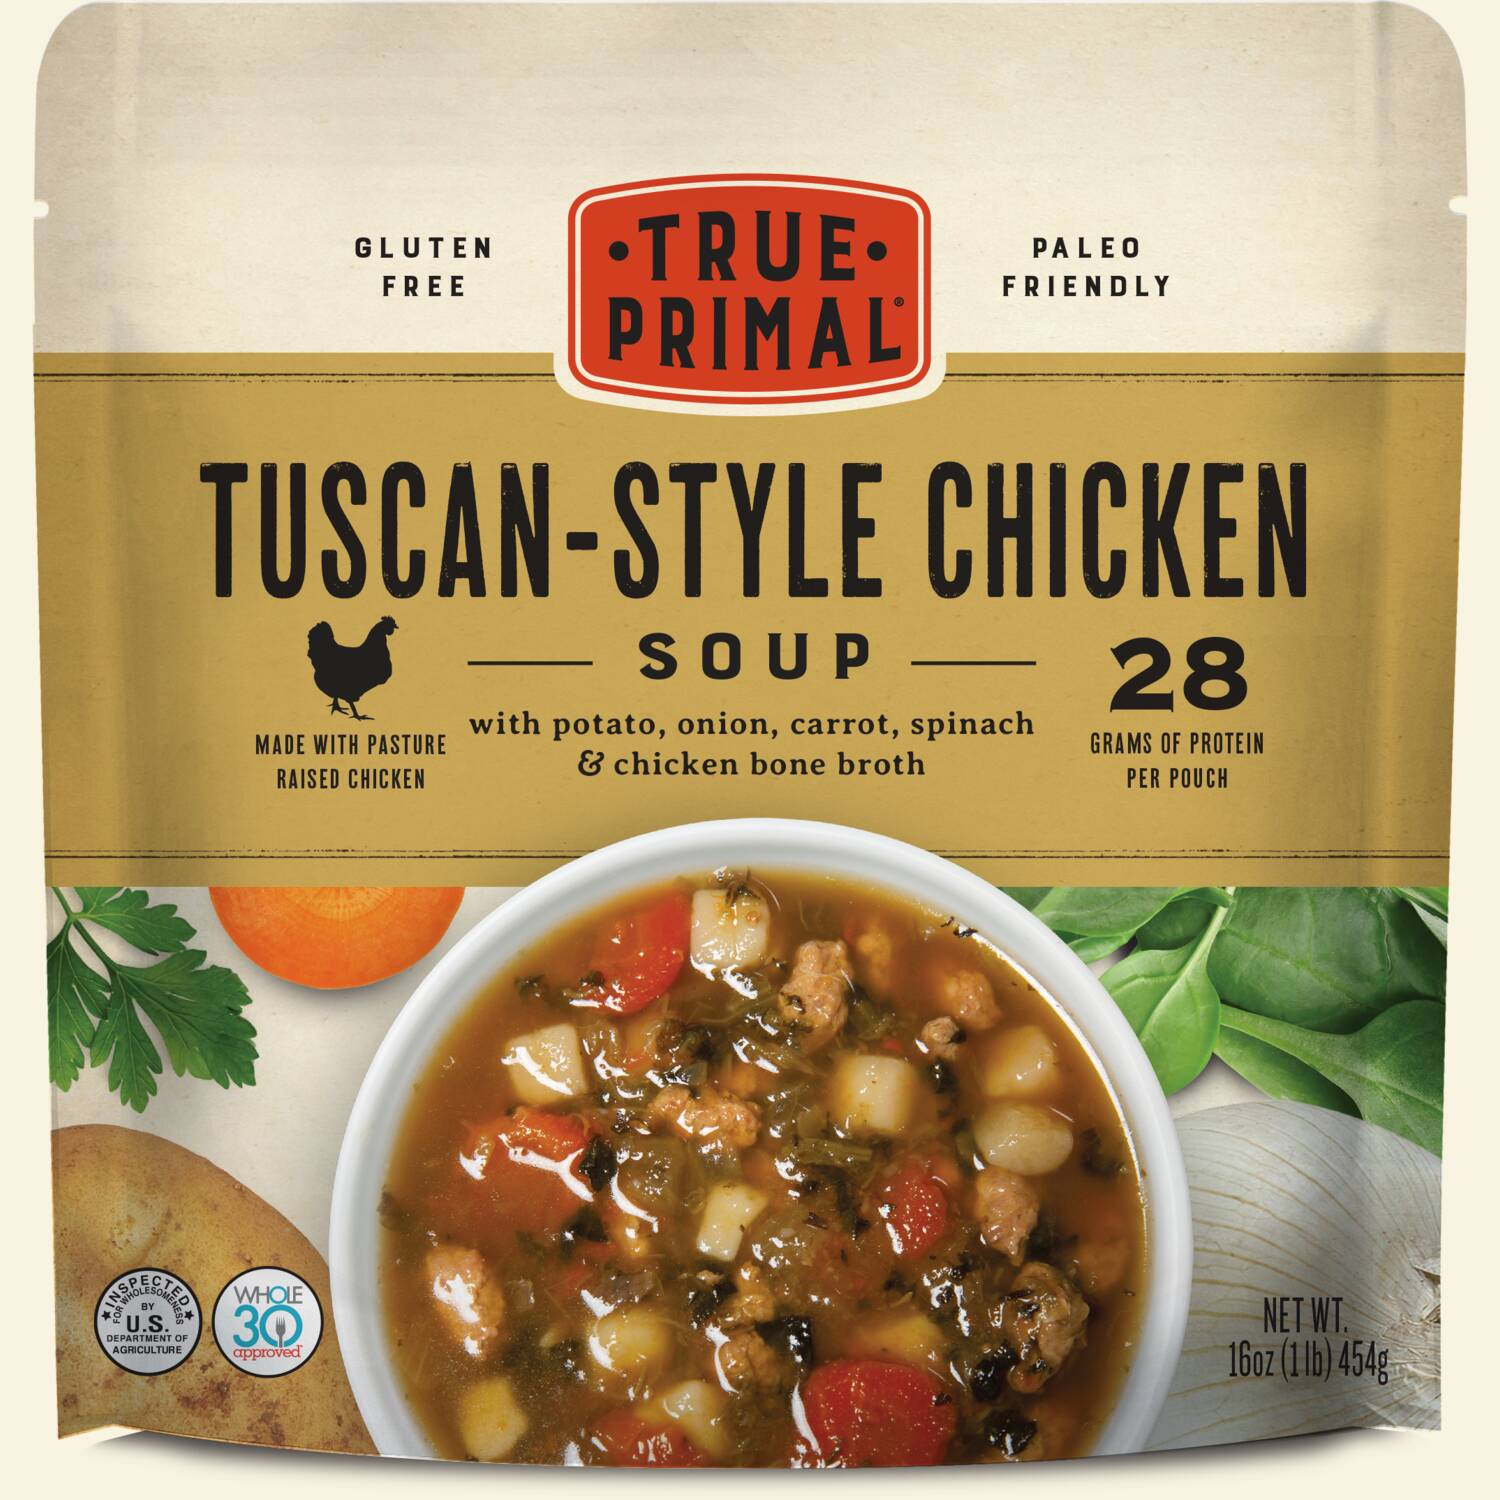 True Primal Tuscan-Style Chicken Soup in pouch, front